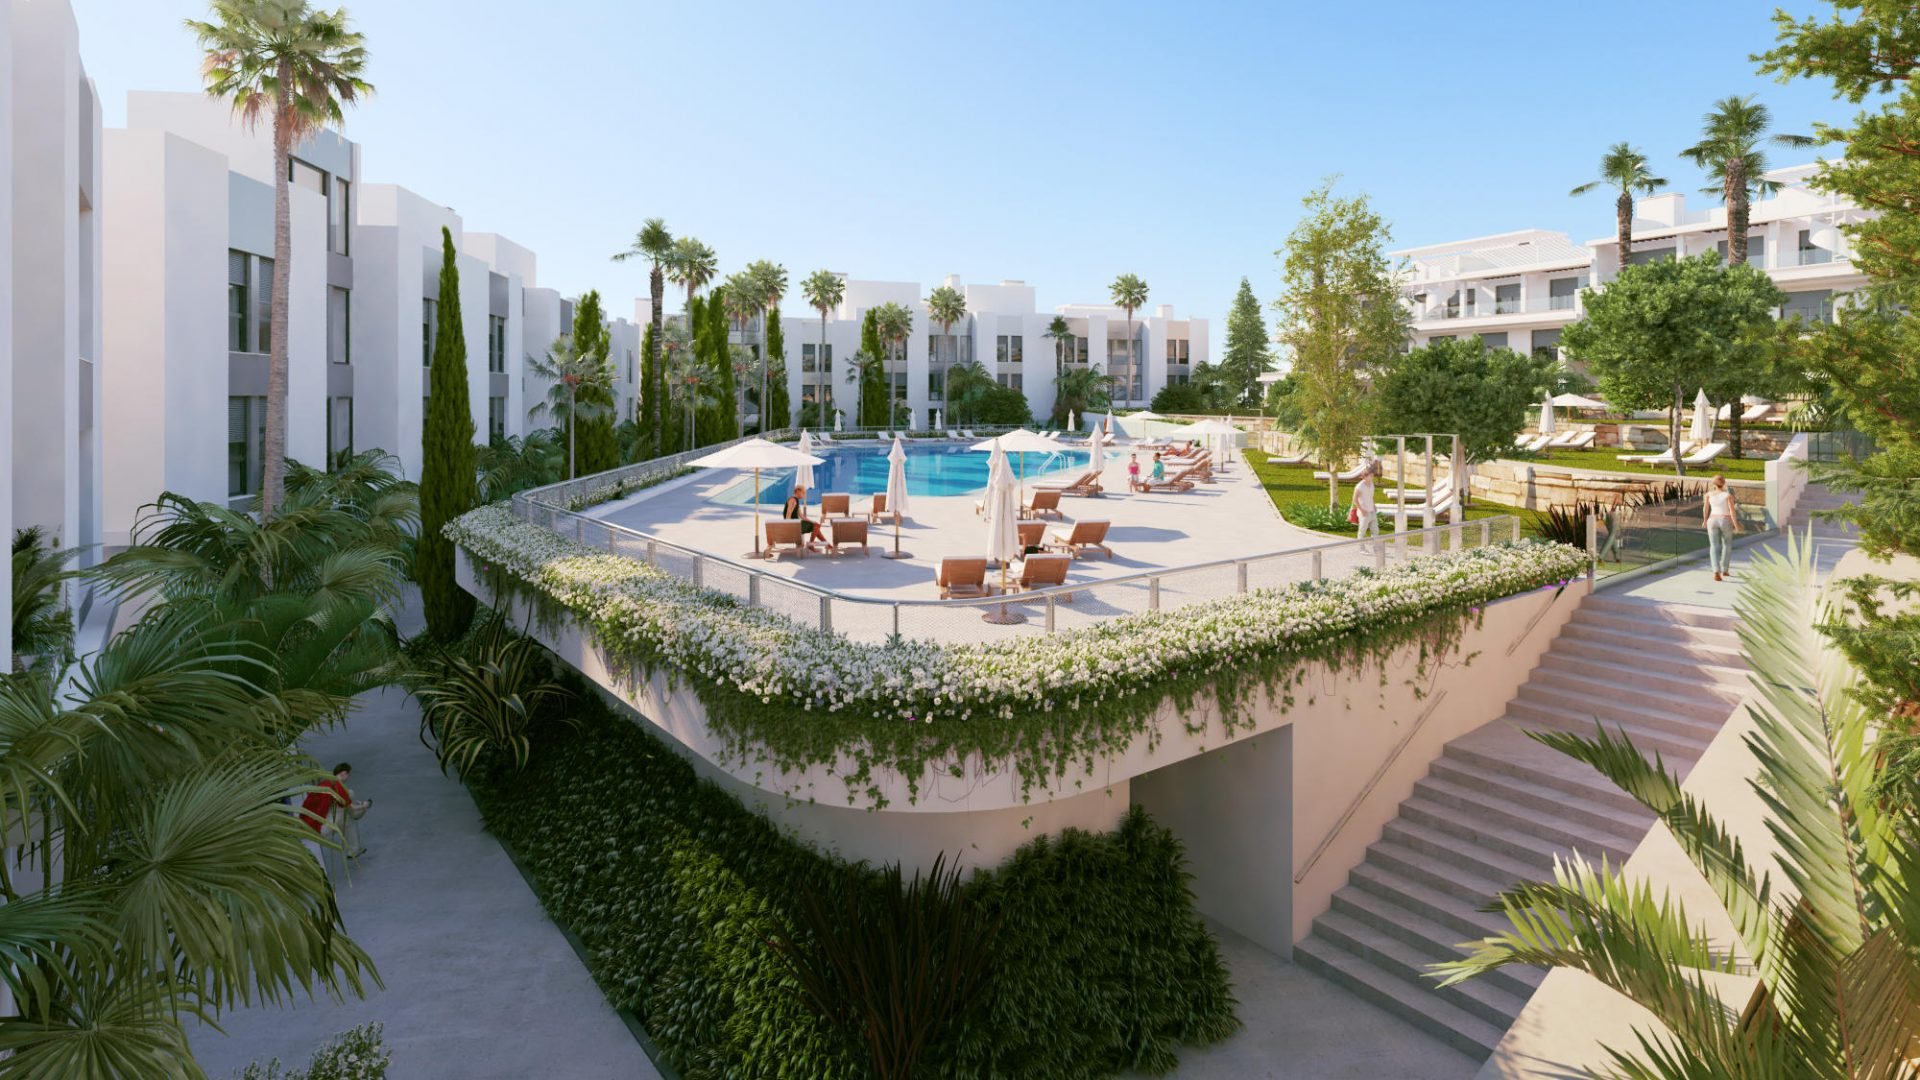 2, 3, 4 bedroom penthouses & townhouses in Cancelada, Estepona